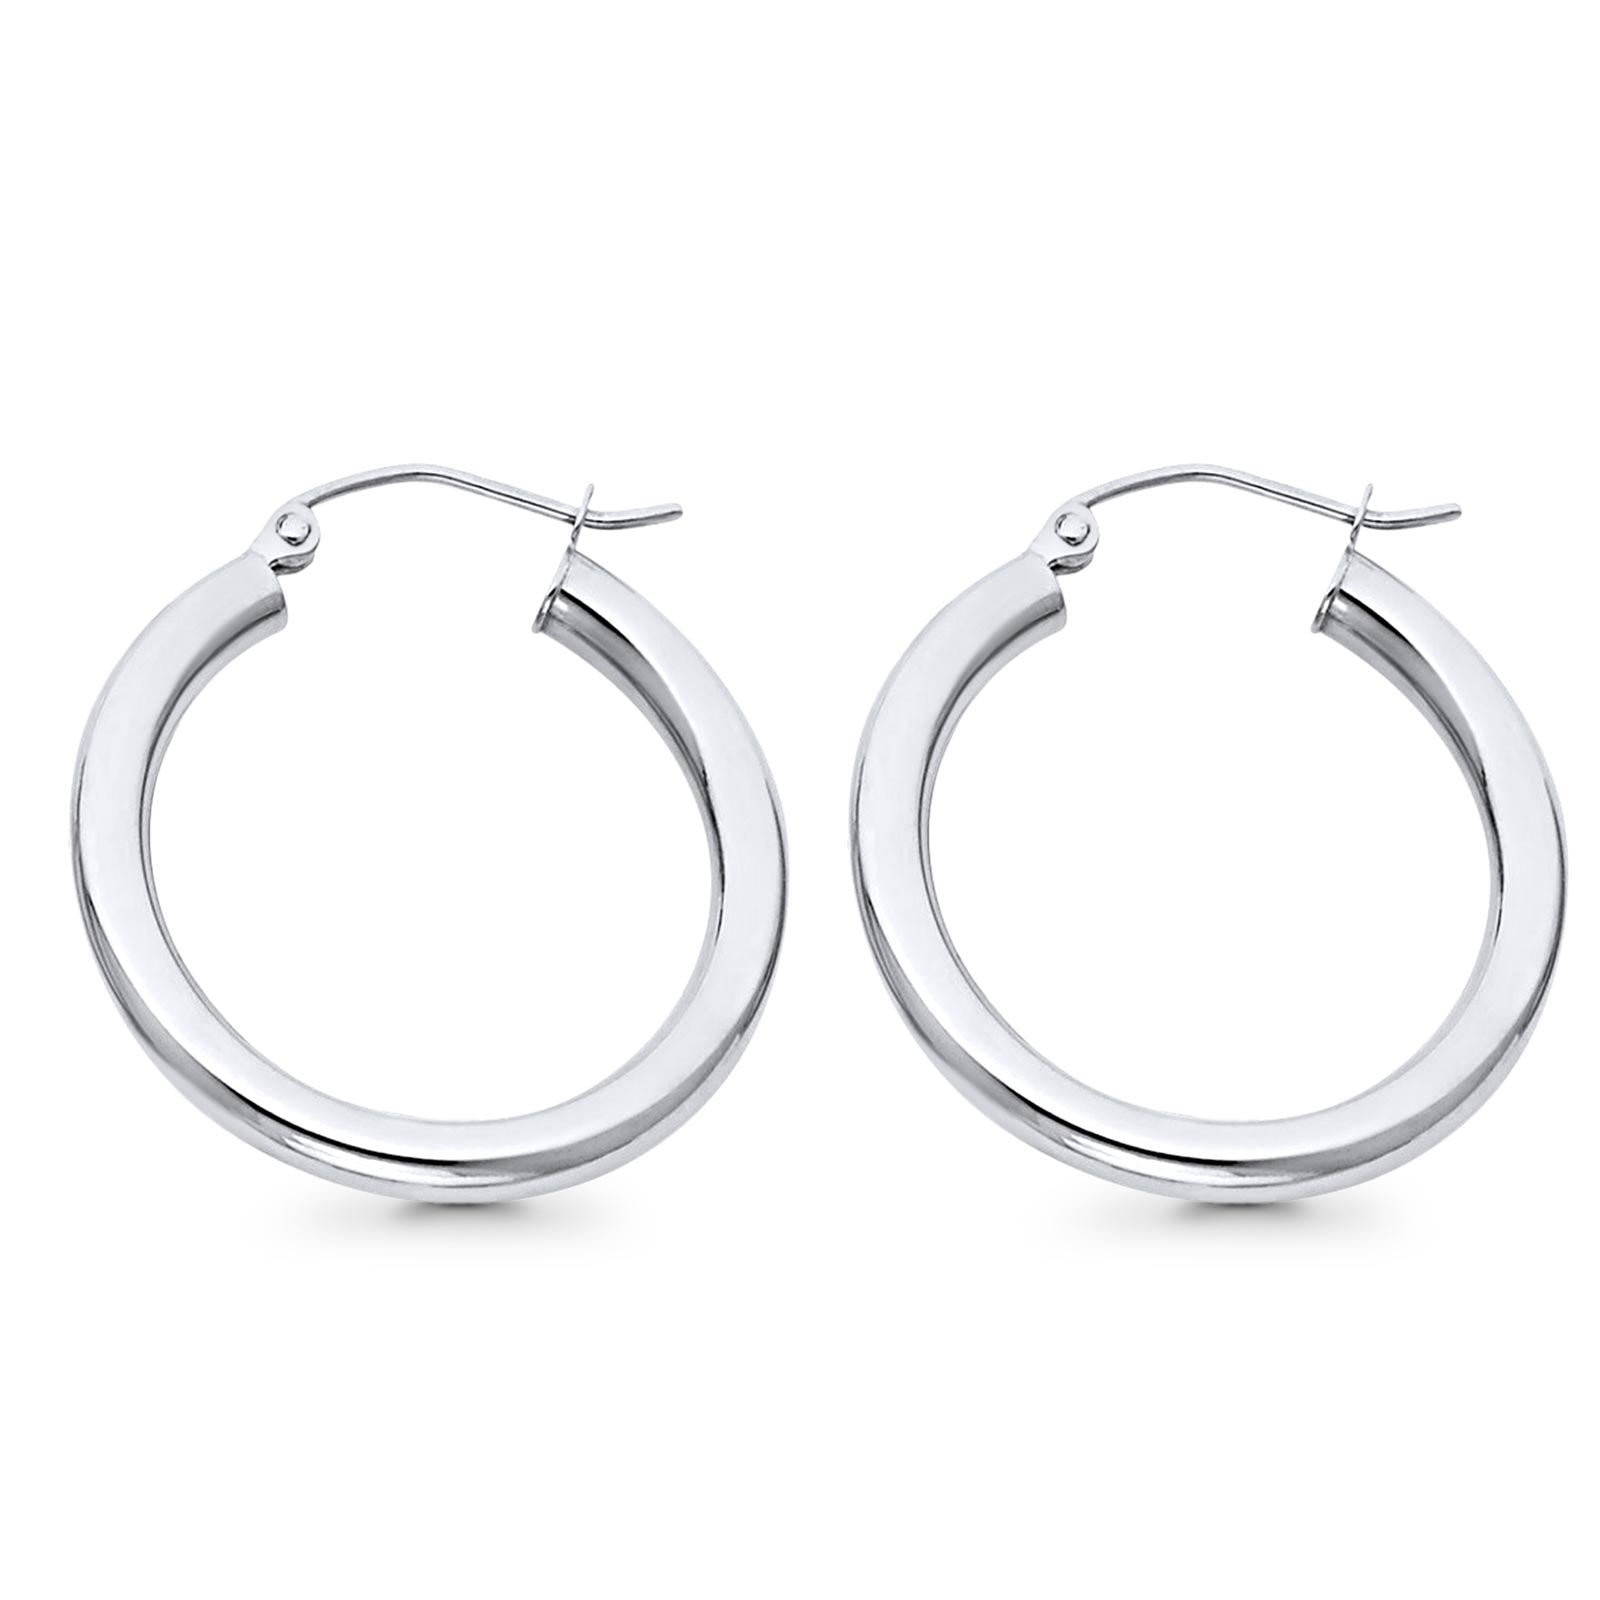 White Gold 14K Real 3mm Stylish Plain Snap Closure Hoop Earrings Hinged 1.8grams 24mm